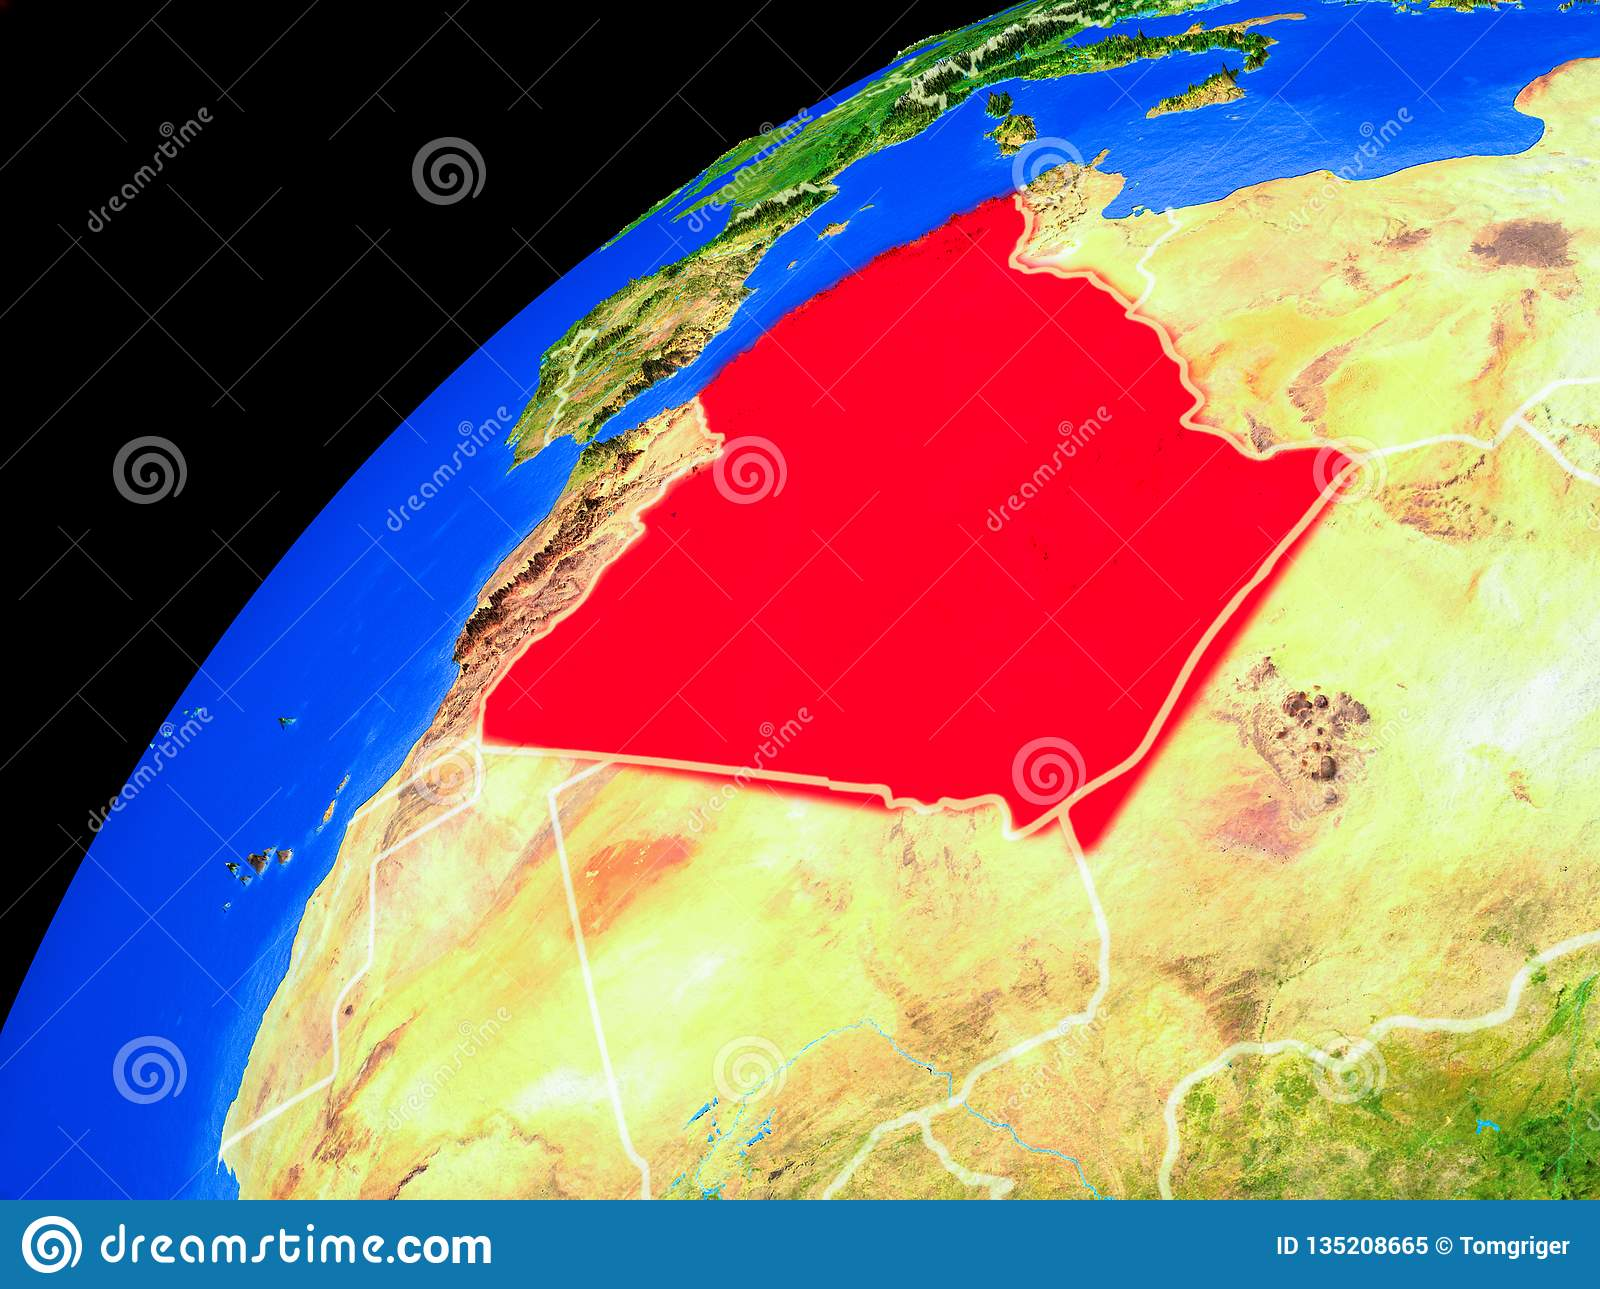 Algeria on Earth from space